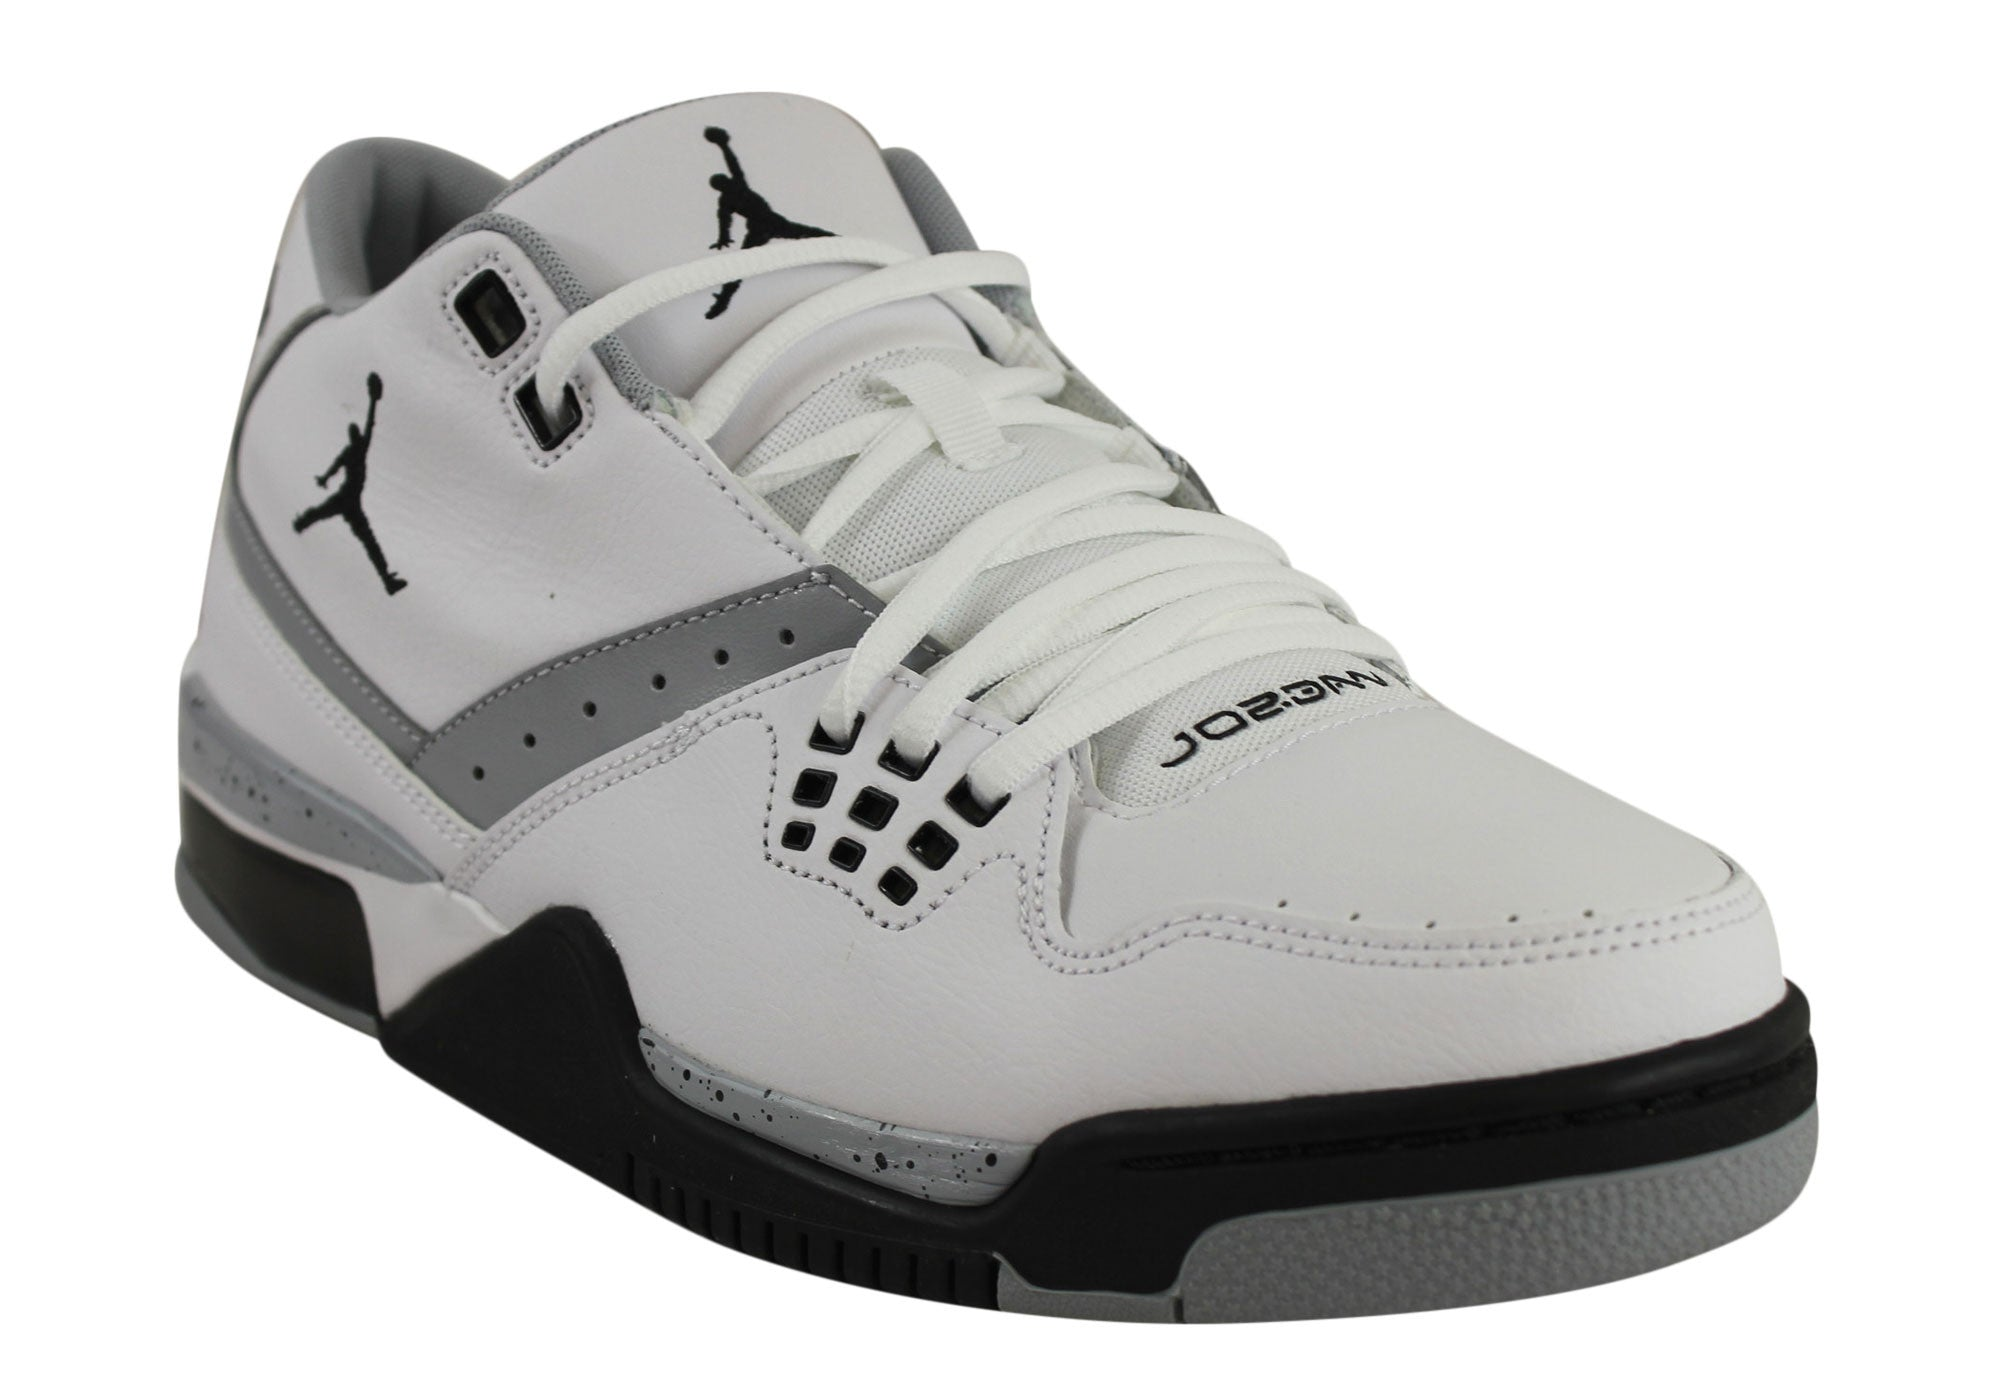 Nike Jordan Flight 23 Mens Basketball Shoes/Hi Tops/Boots